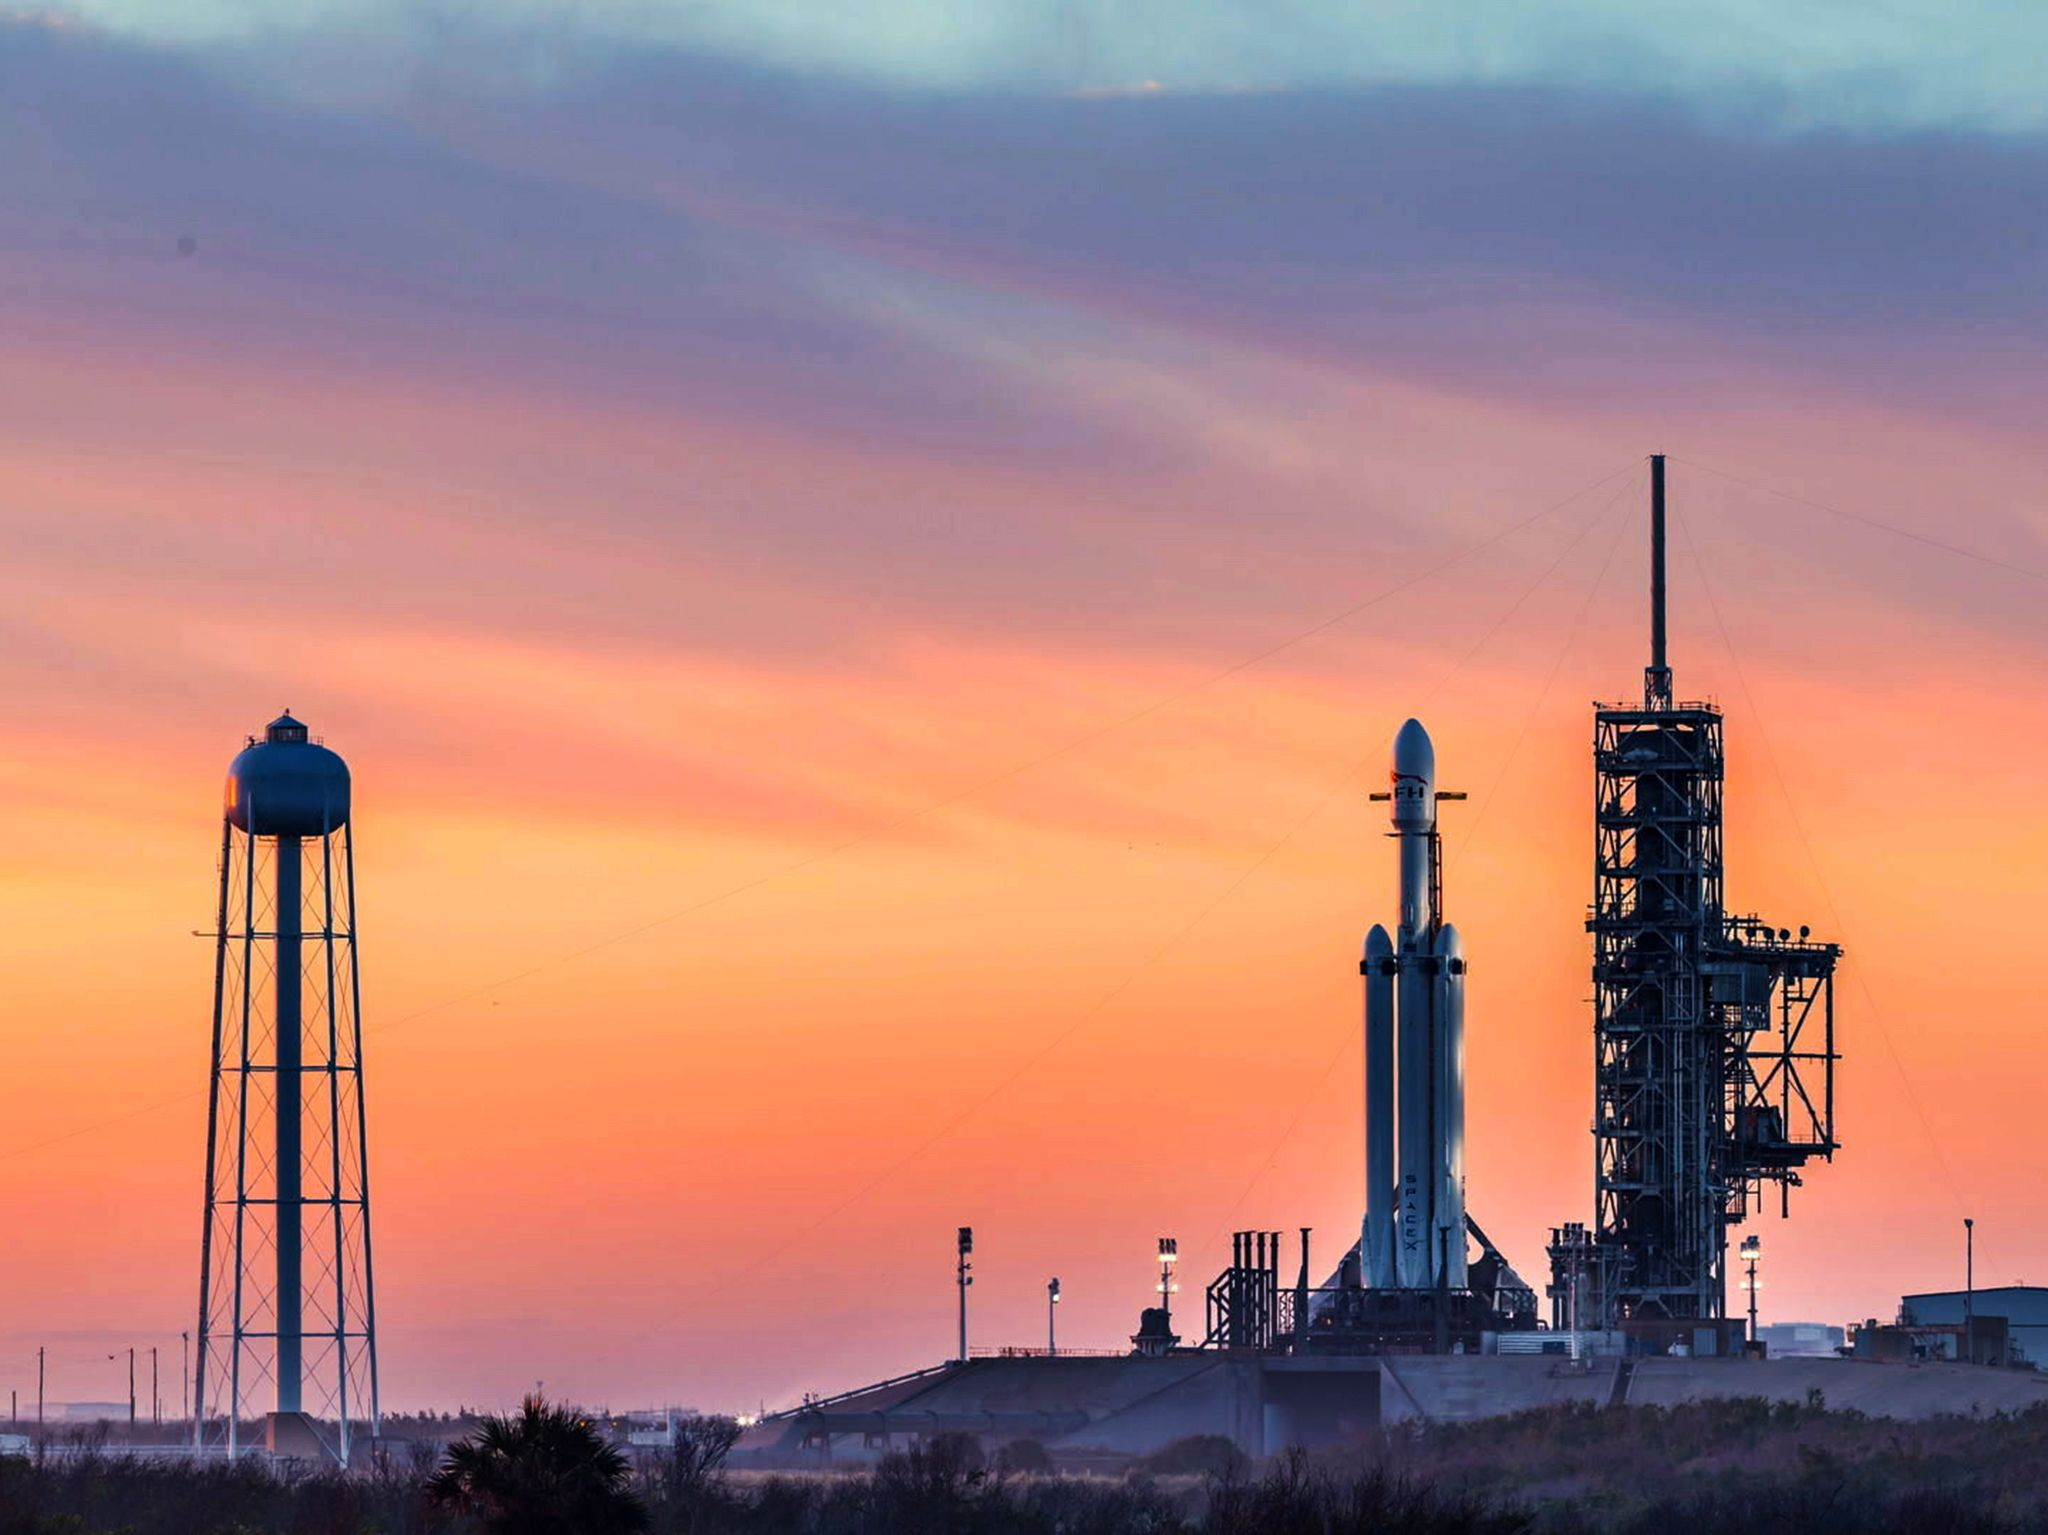 Cape Canaveral, FL: Falcon Heavy at KSC Launchpad 39A on February 6, 2018, the day of its maiden... [Photo of the day - October 2018]